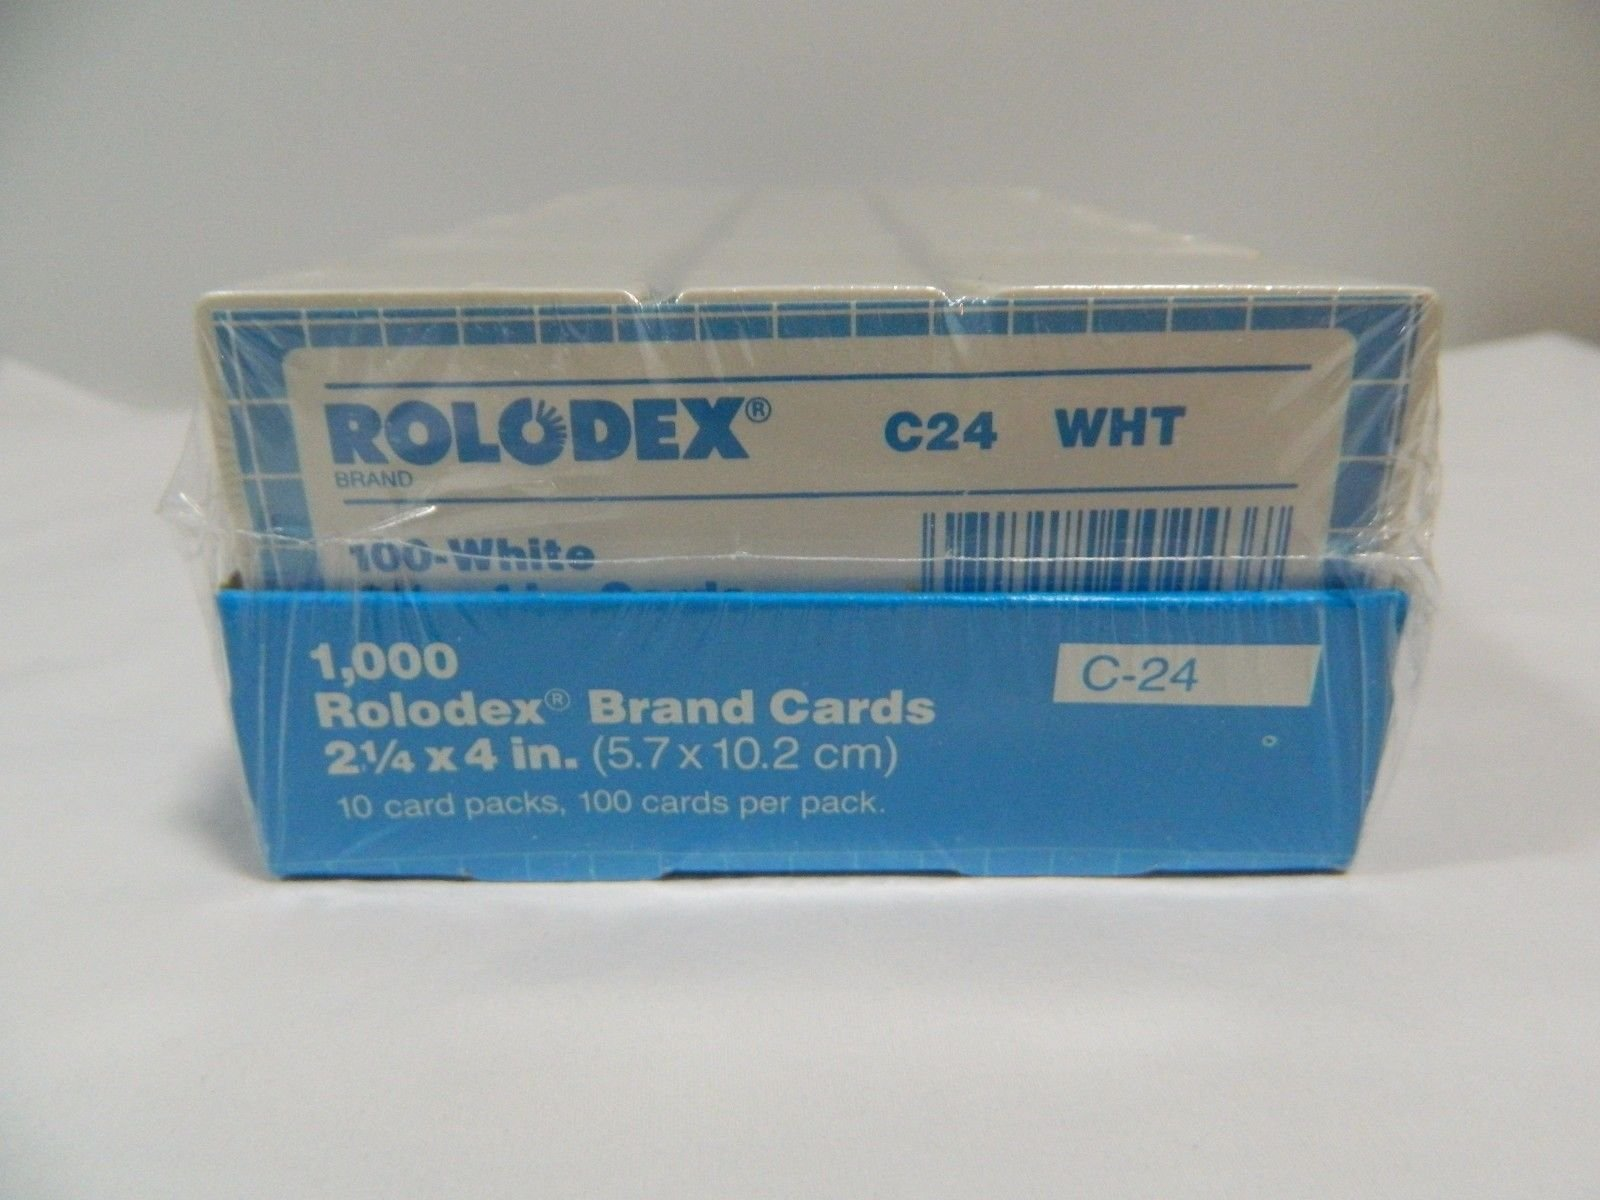 Rolodex Genuine Brand Cards 1000ct. C-24 21/4X4 White File Cards by Rolodex by Rolodex (Image #1)